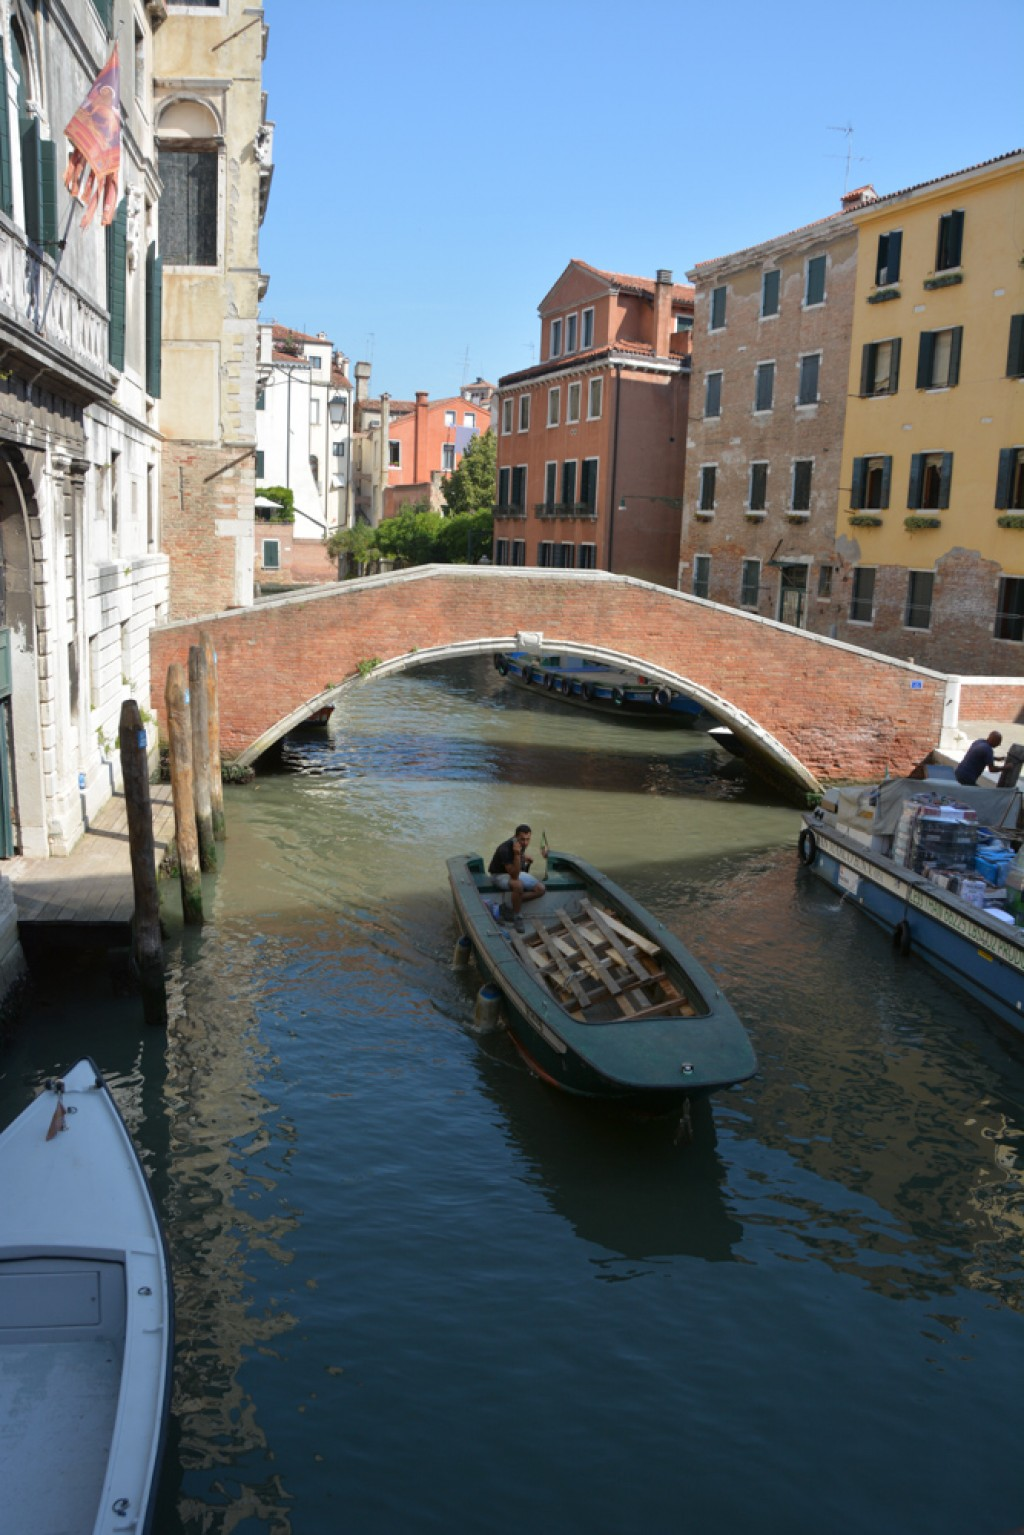 We returned to Venice after 20 years.  The weather was oppressively hot, but we had beautiful sunshine the whole time we were there.  Venice is one of our favourite cities - everywhere you look the beauty is overwhelming.